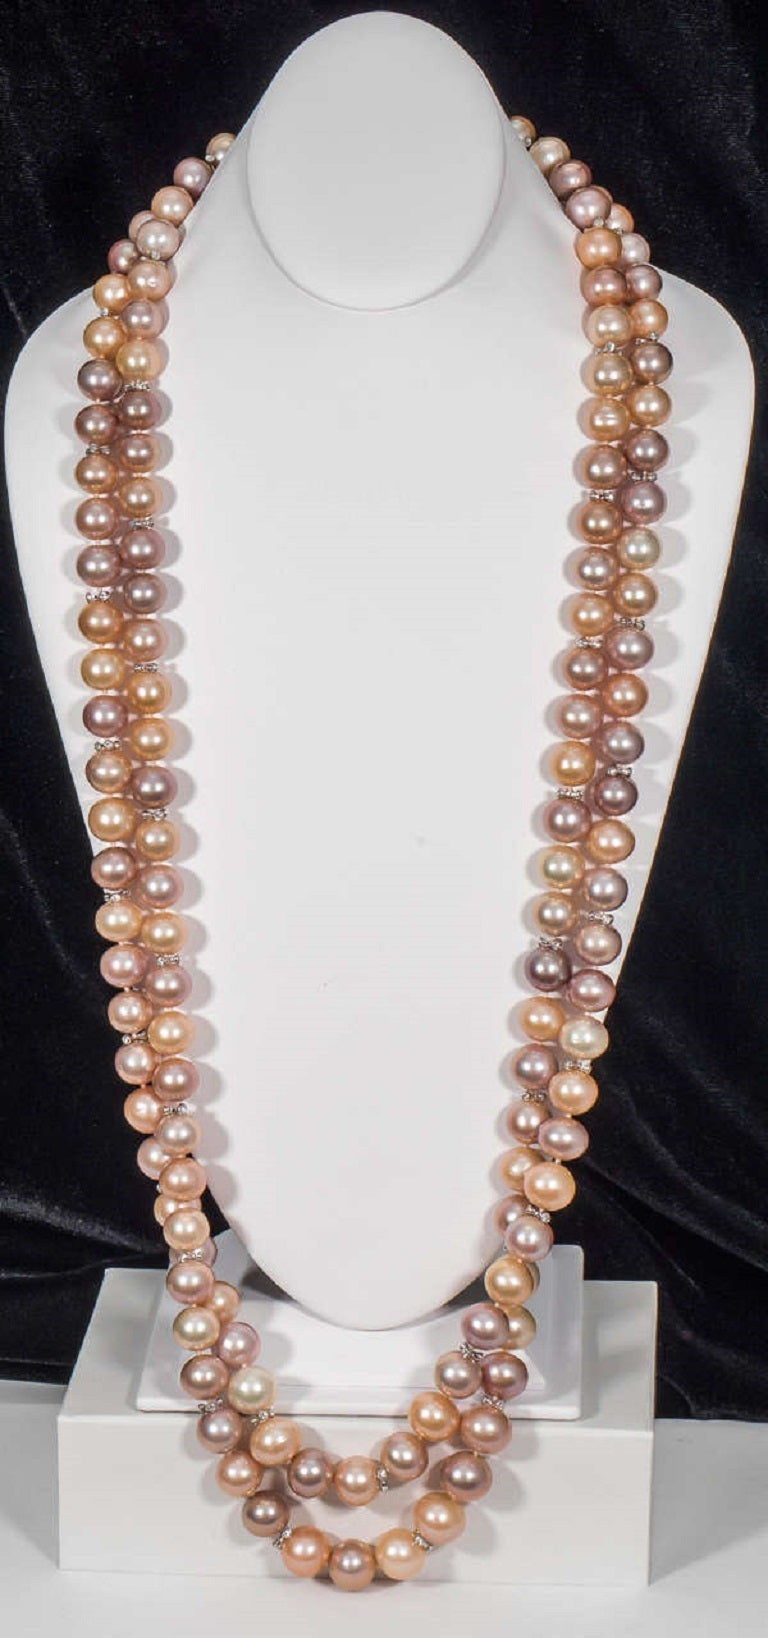 Naomi Sarna Double Strand Freshwater Pearl Diamond Gold Necklace 5